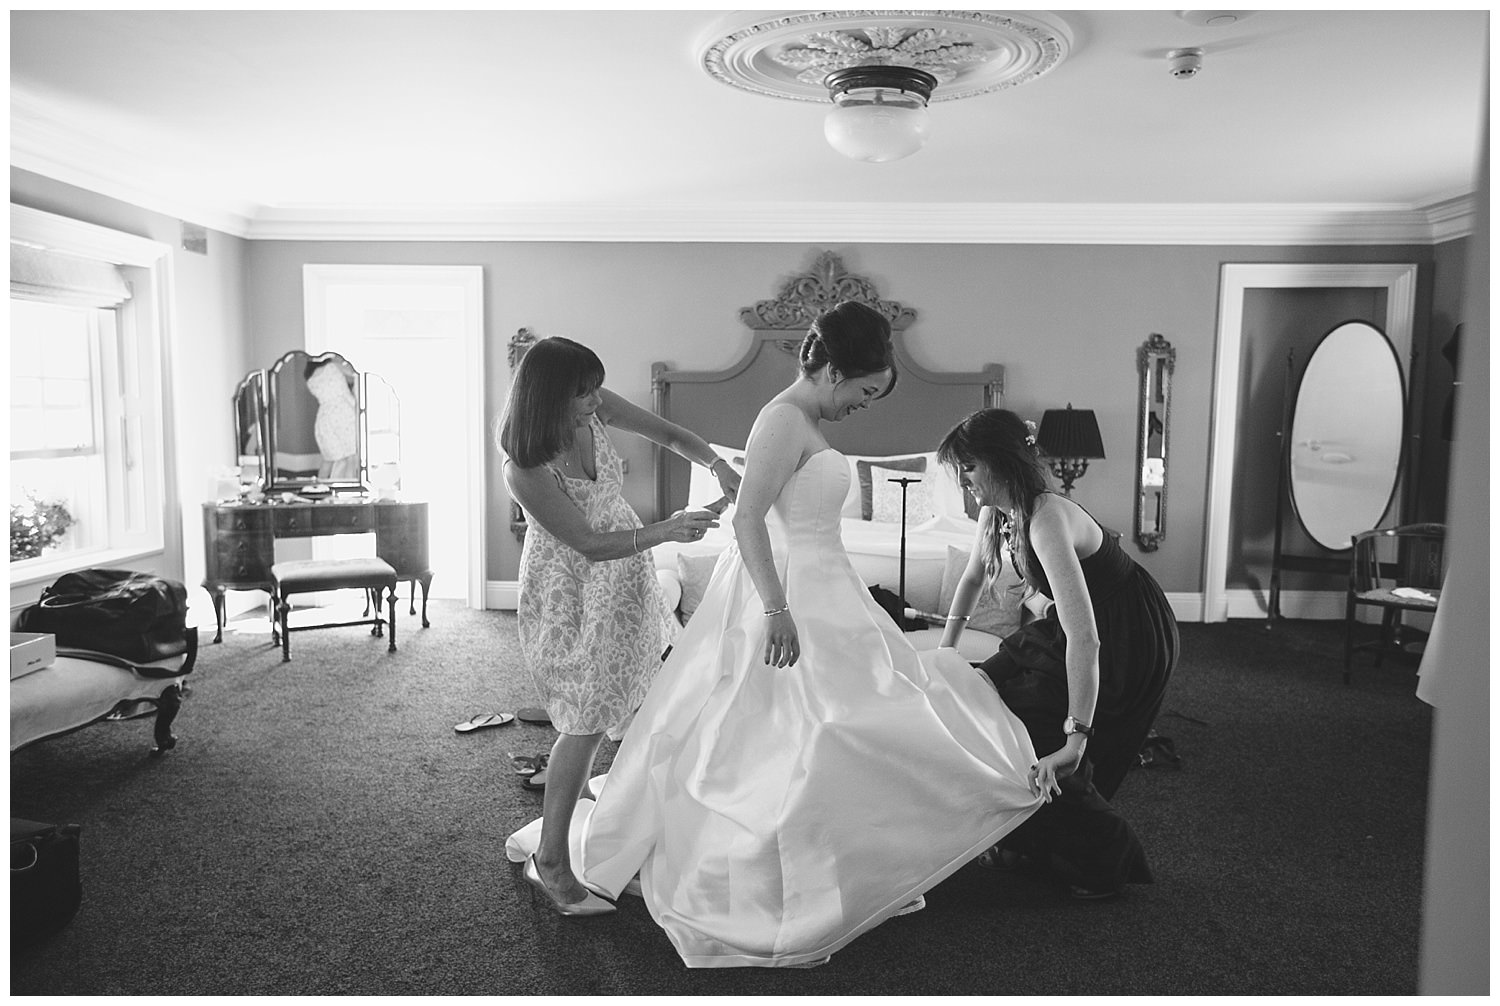 The finishing touches are put to the dress